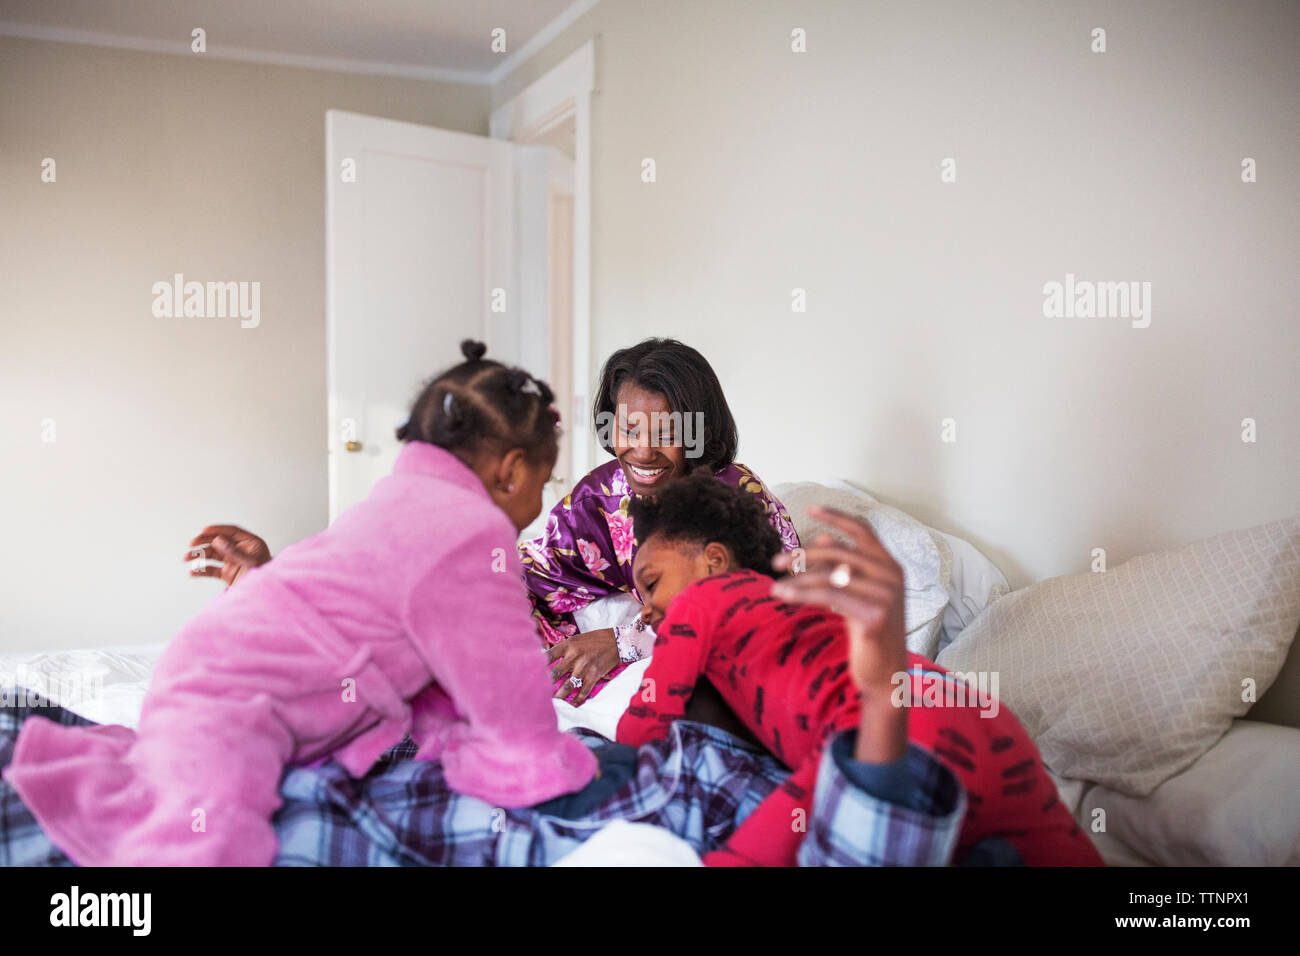 Cheerful family spending leisure time in bedroom Stock Photo